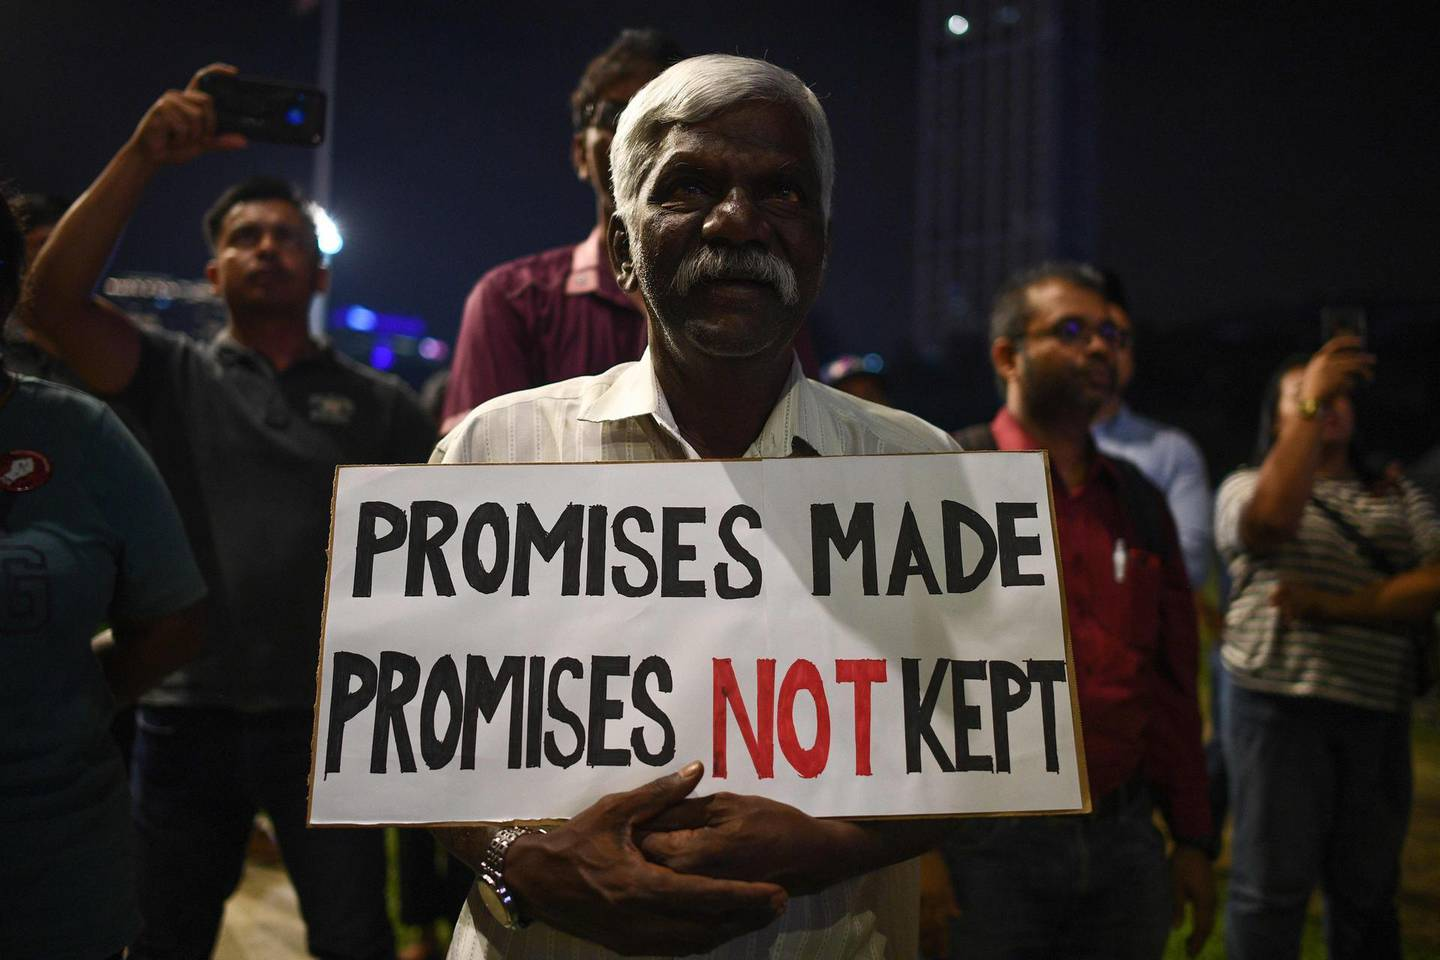 A man holds a sign at a protest against a national government being formed without new elections at Independence Square in Kuala Lumpur on February 25, 2020. Intense political jockeying is underway to form a new government in Malaysia after Mahathir Mohamad, the world's oldest leader, resigned then was appointed interim leader. / AFP / Mohd RASFAN